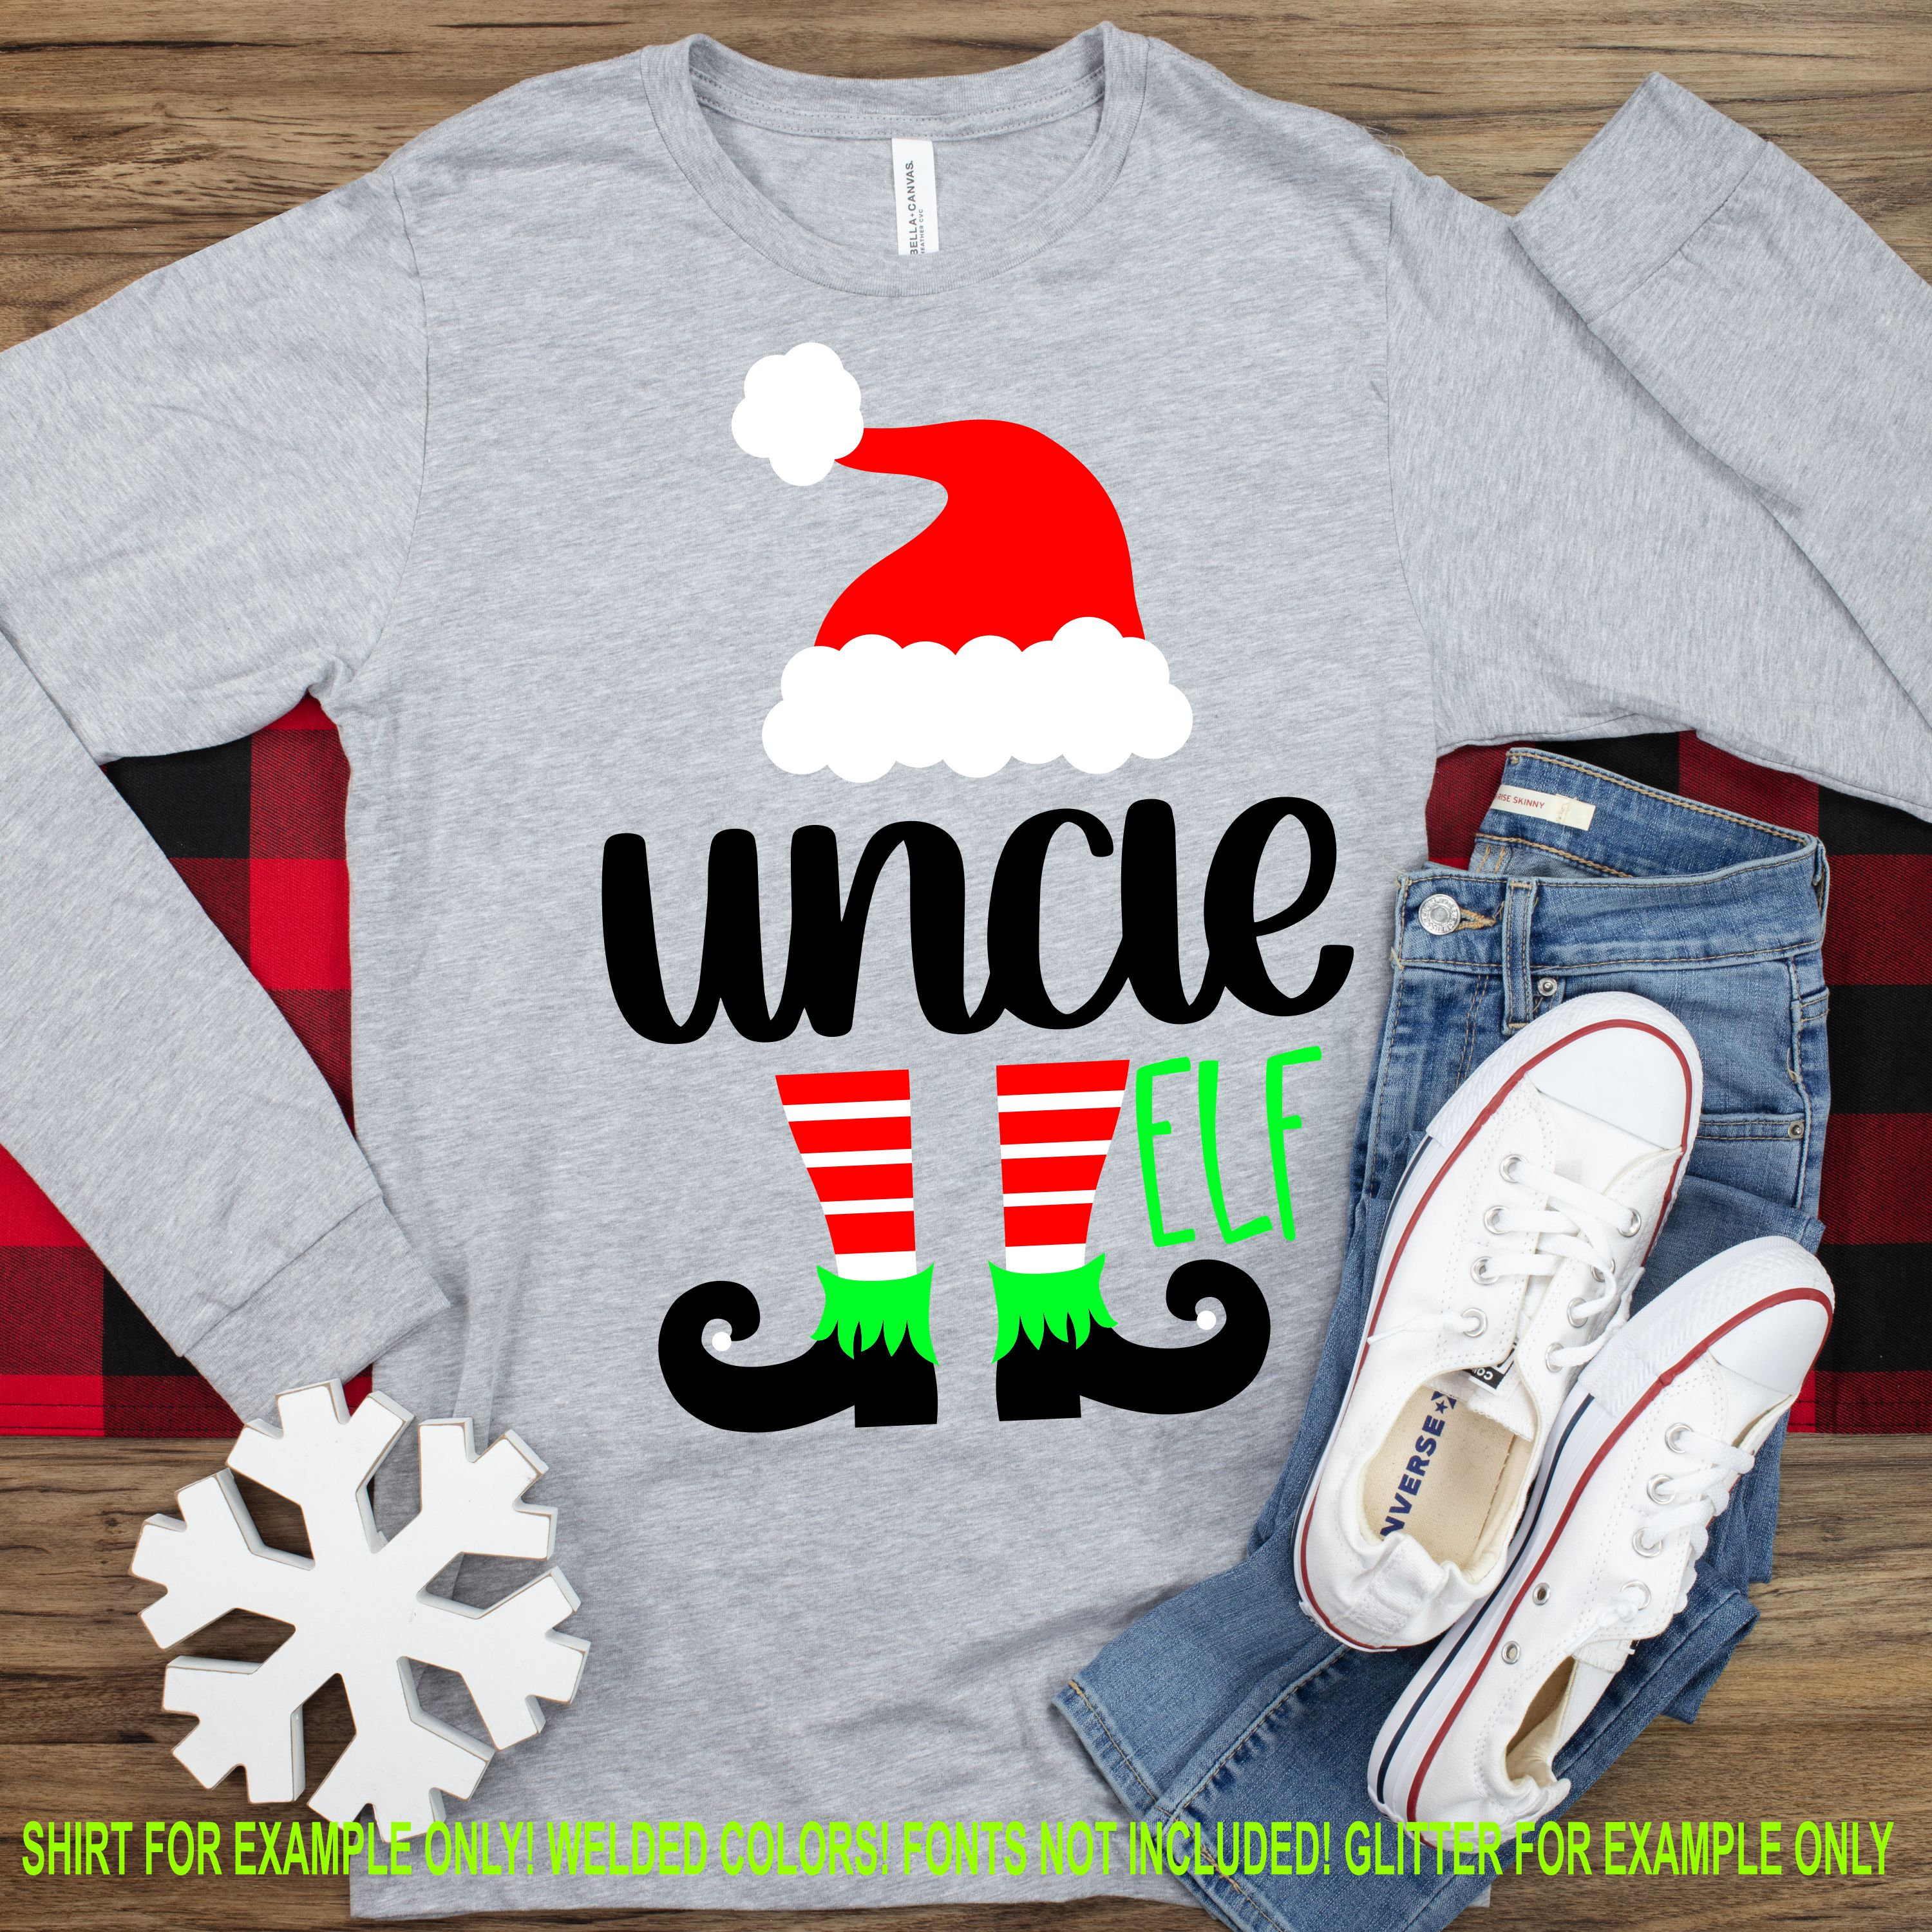 Uncle-elf-svgchristmas-elf-svgfamily-matching-elf-svgelf-leg-svg-elf-monogram-svgchristmas-svg-designschristmas-cut-file-cricut-svg-5fa0925e